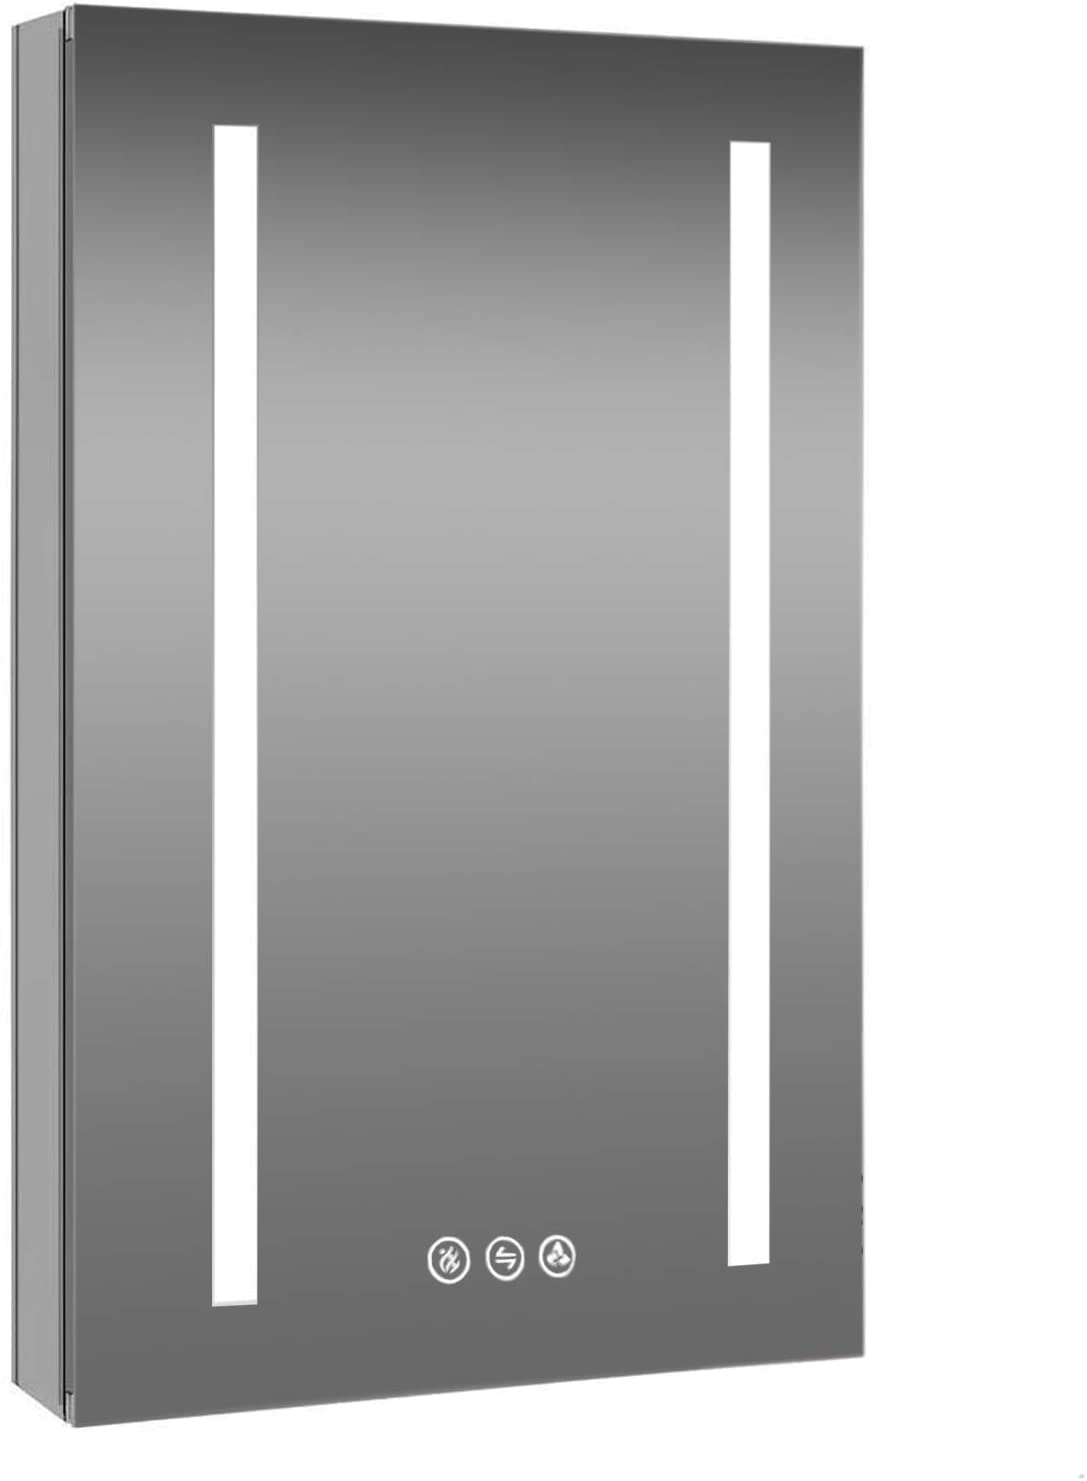 Recessed or Surface 24 Inch LED Mirror Medicine Cabinet with Defogger, Dimmer, Outlets & USB Ports (24x32/Right Hinge)